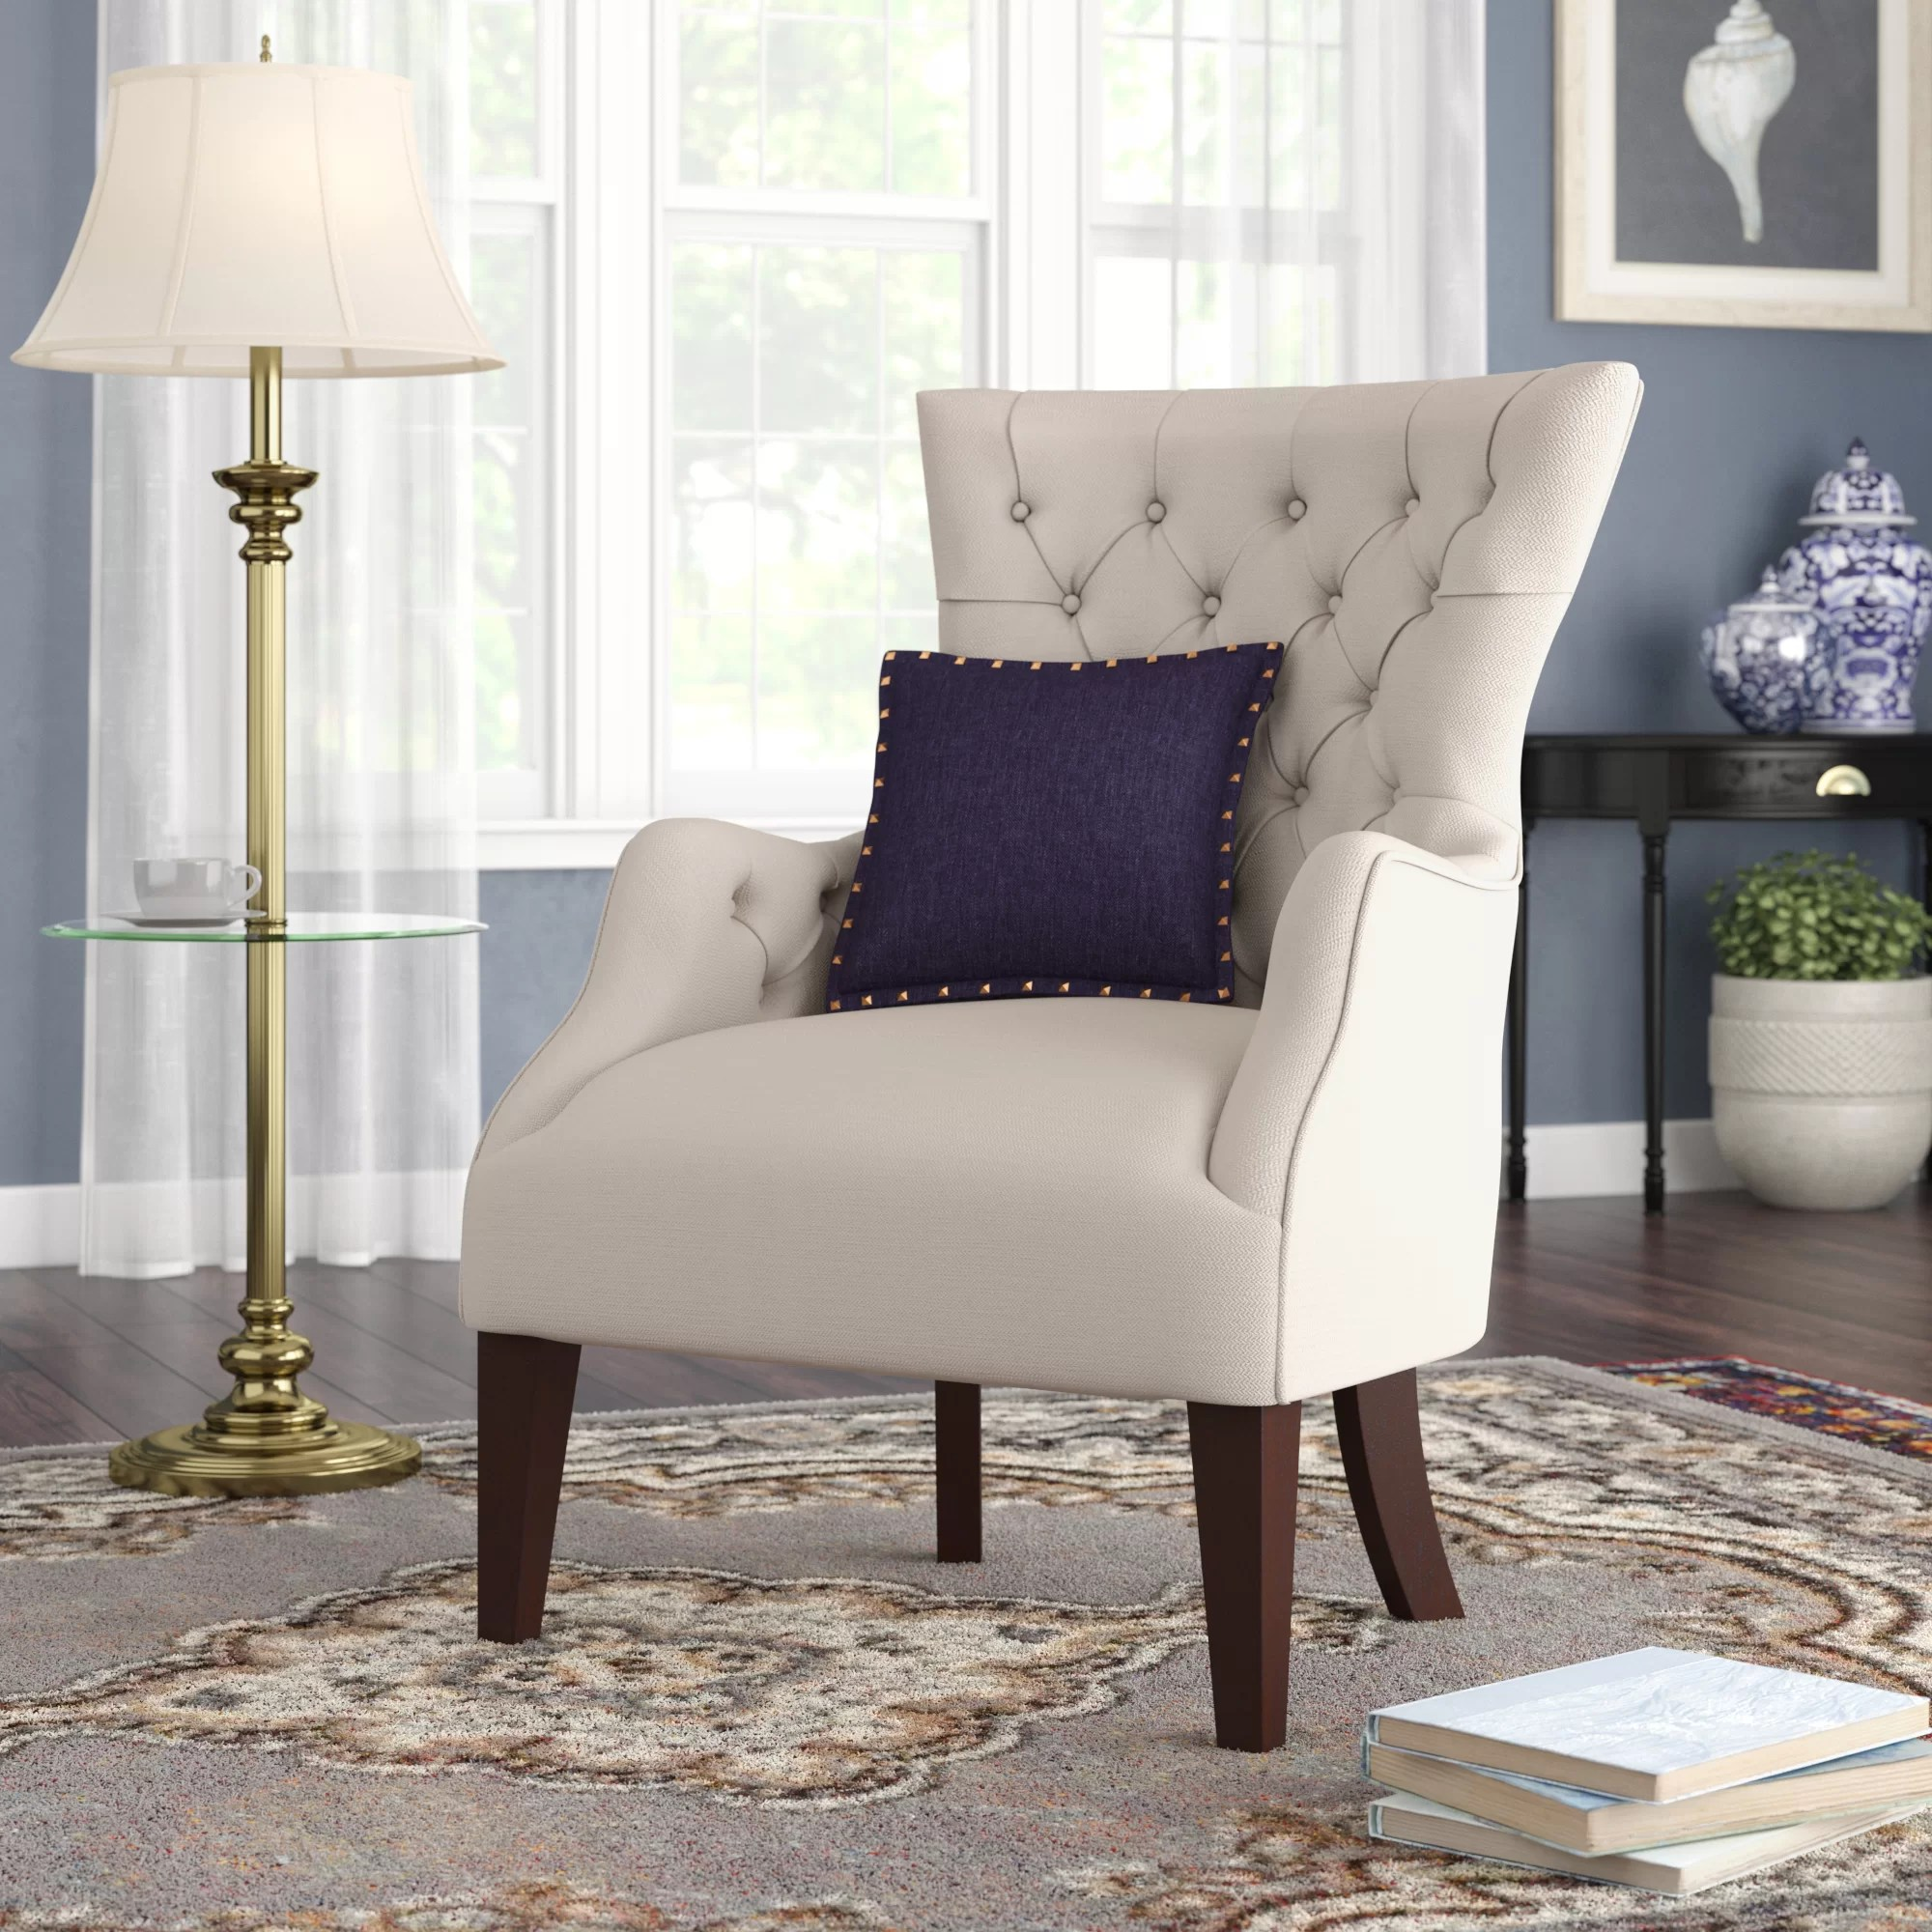 Big Sofa Island Greige Steelton Button Tufted Wingback Chair